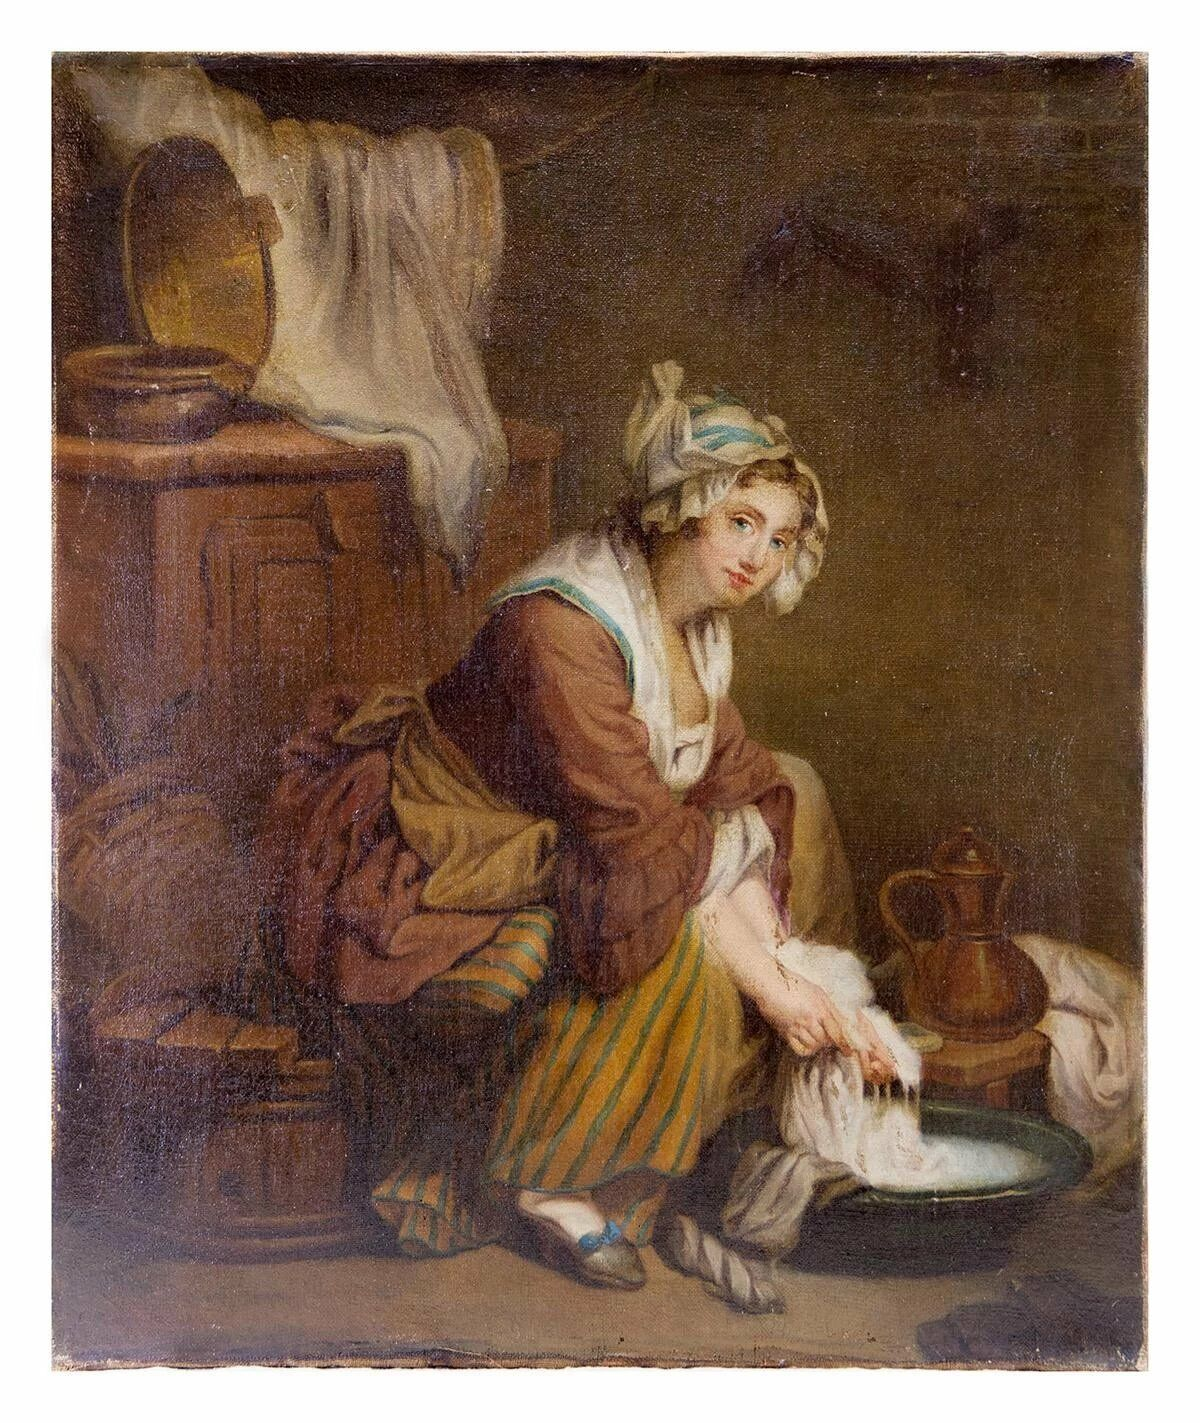 "Antique c.1830-50 Oil Painting on Linen Canvas, Laundress ""apres"" GREUZE"